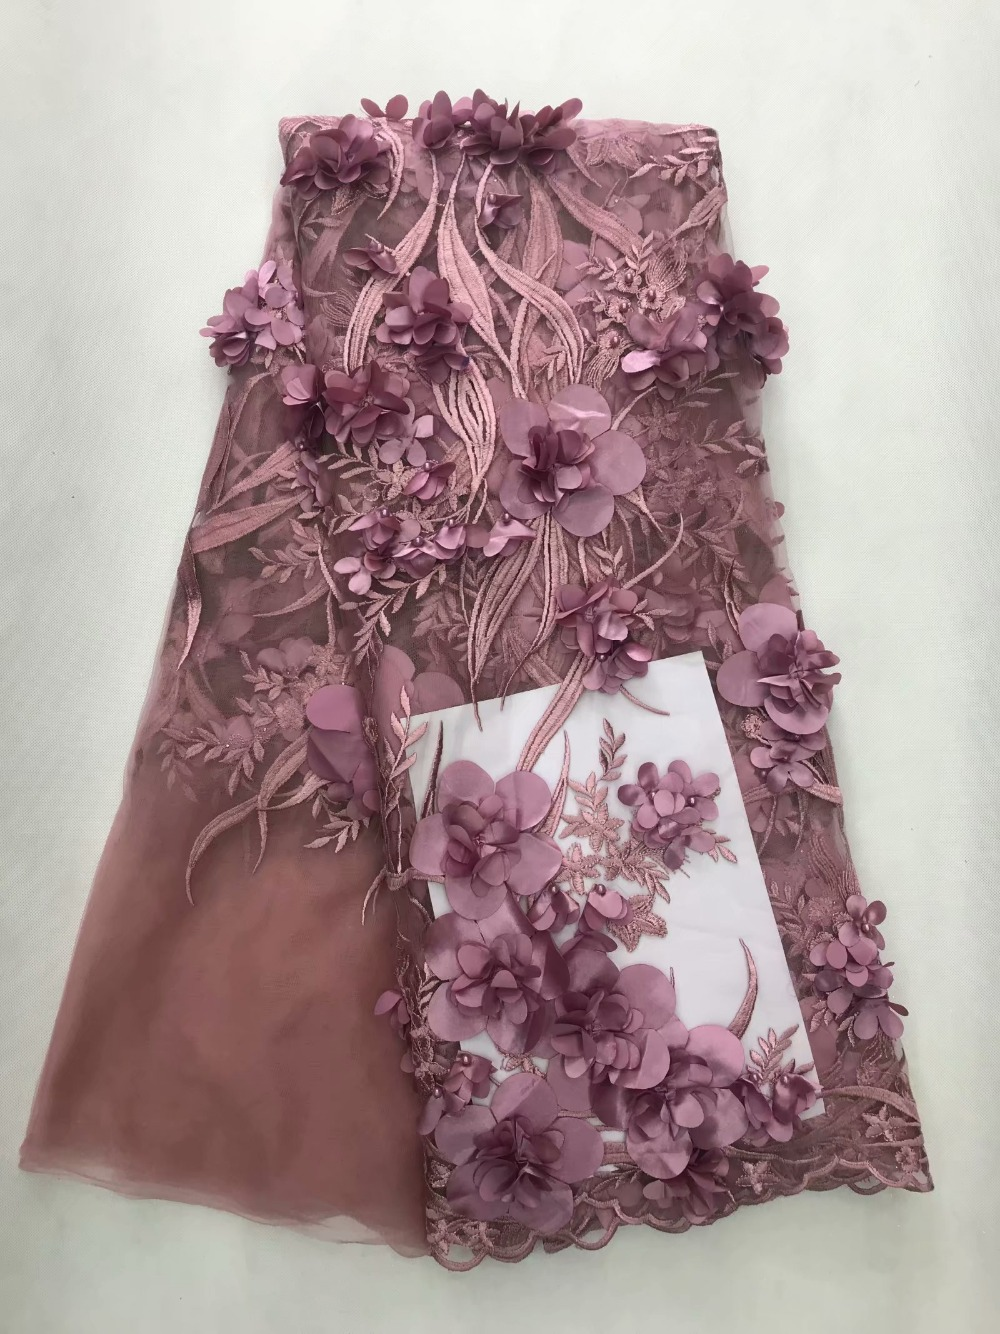 Hot pink pani Africa fine lace fabric high quality French pink applique 3D beaded tulle lace fabric dubai royal apparel-in Lace from Home & Garden    1